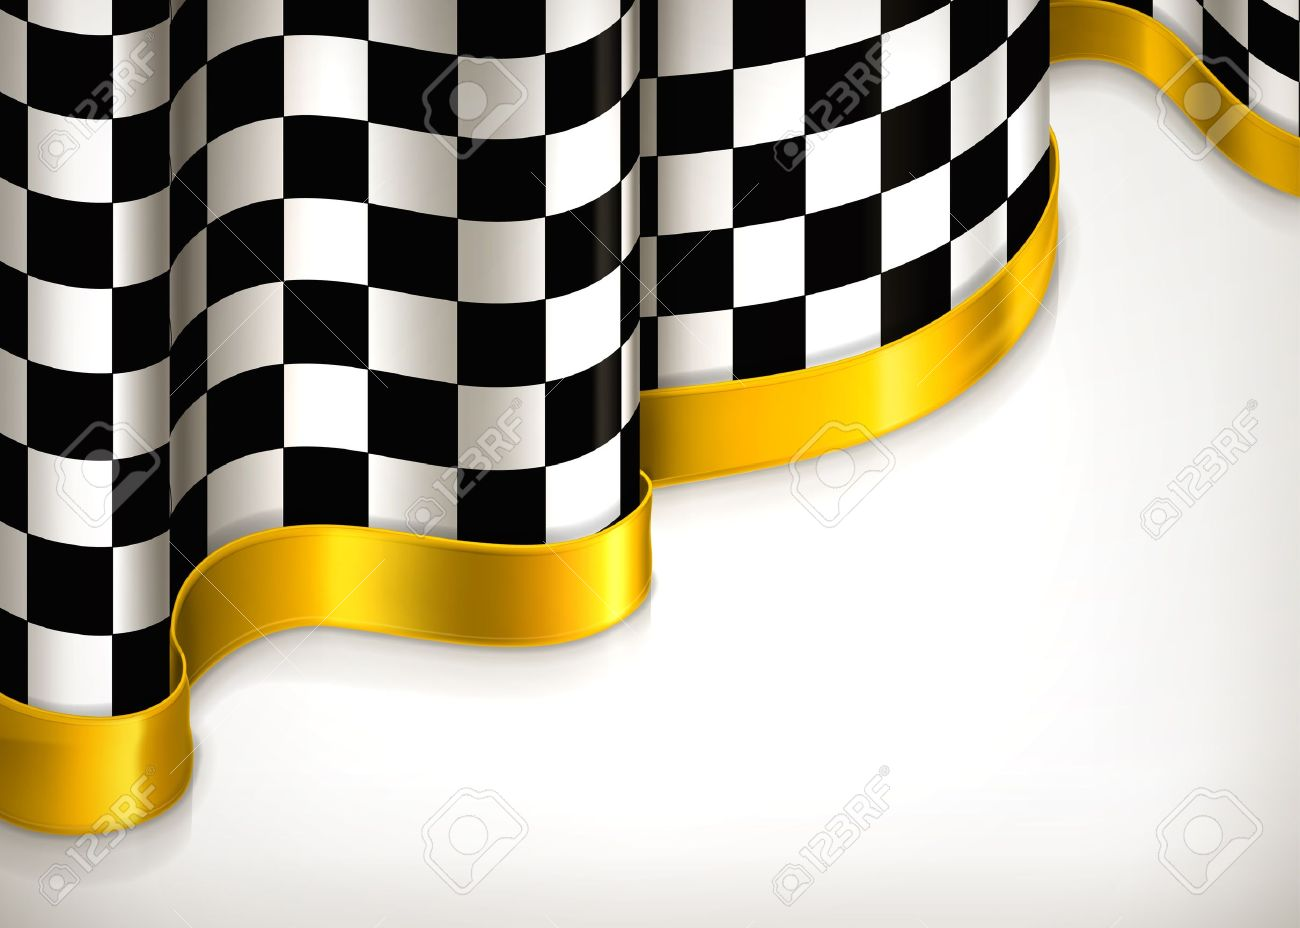 Checkered invitation background royalty free cliparts vectors checkered invitation background stock vector 14277384 stopboris Images